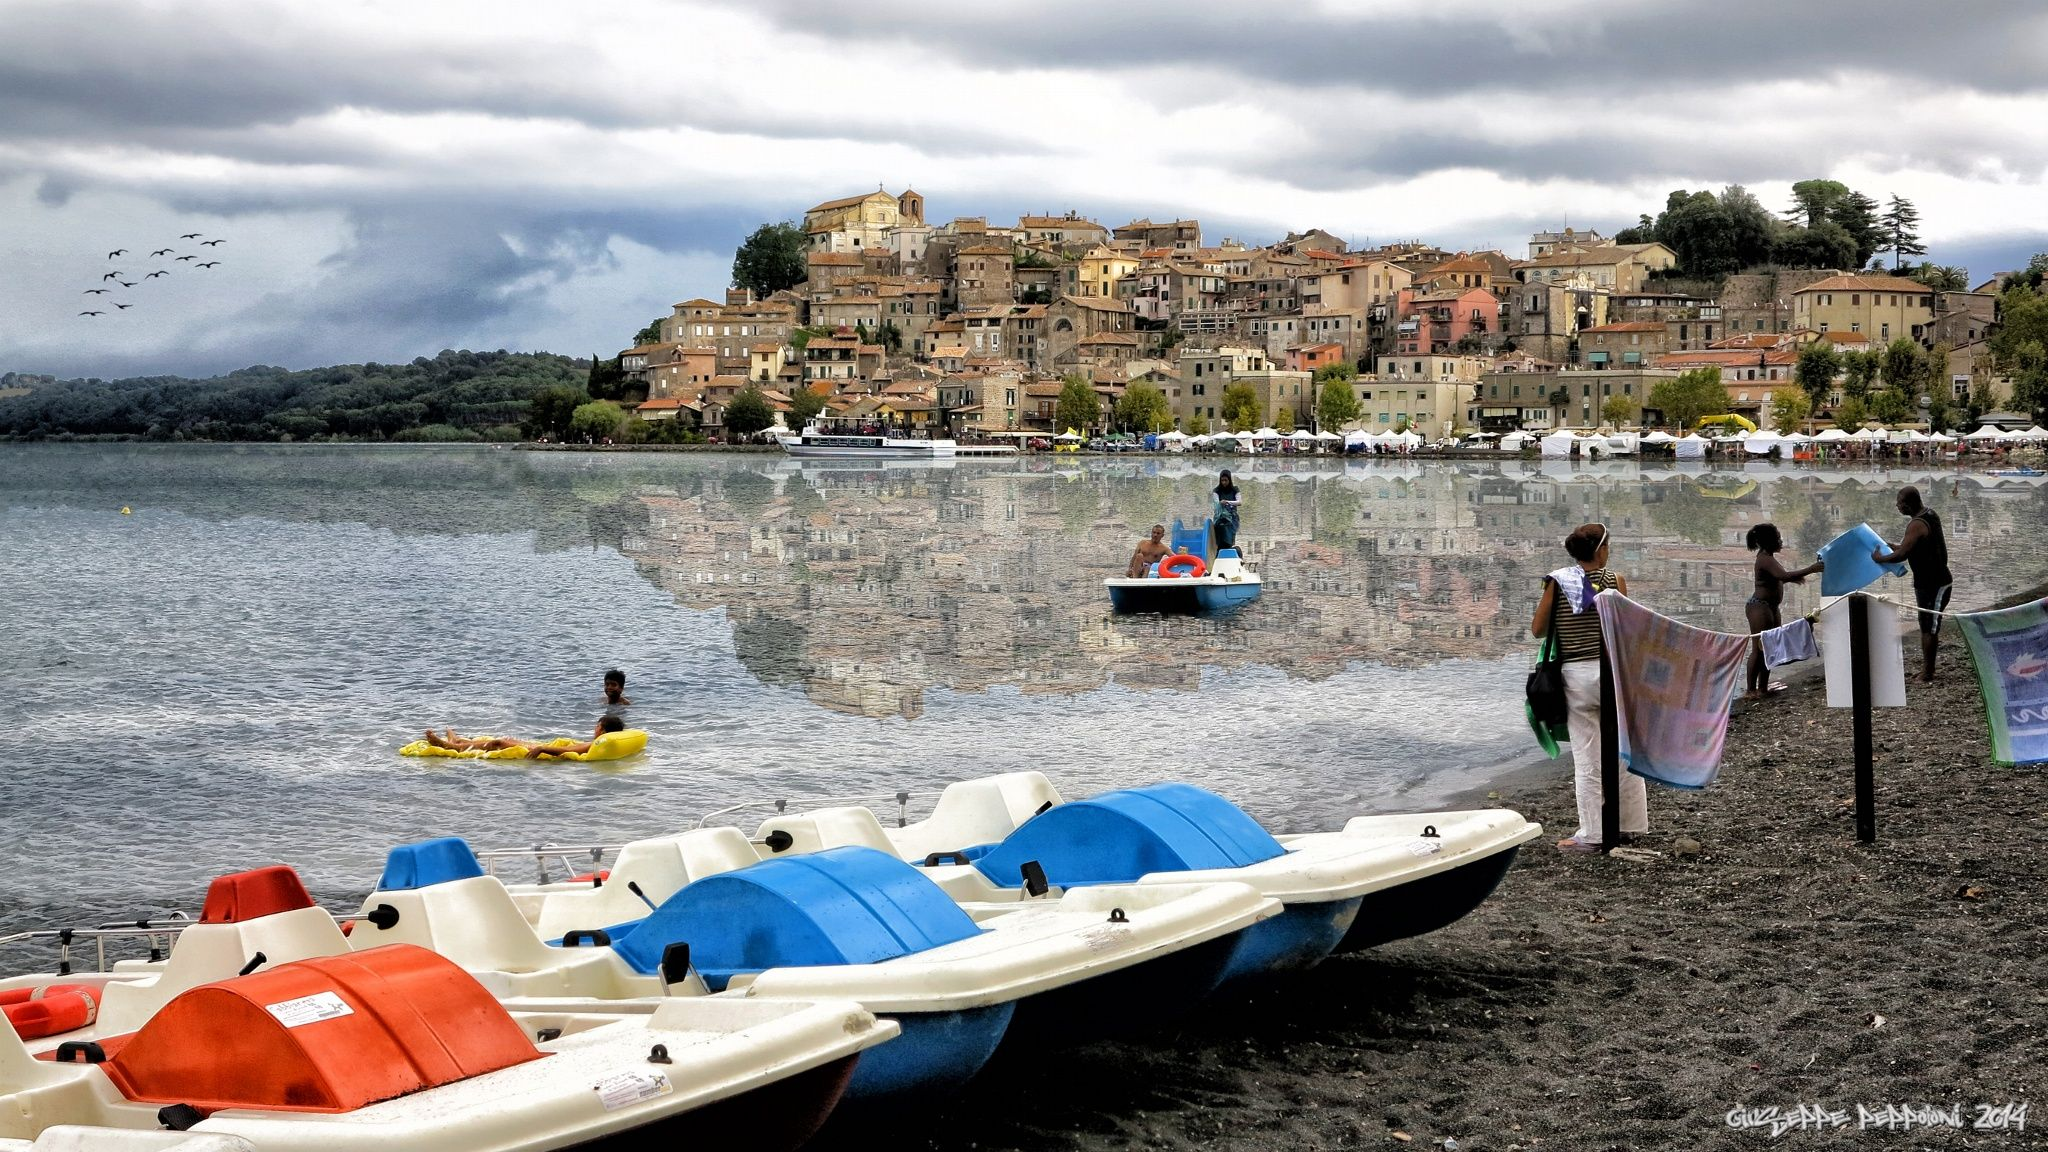 Anguillara Sabazia (Roma) by Giuseppe Peppoloni on 500px